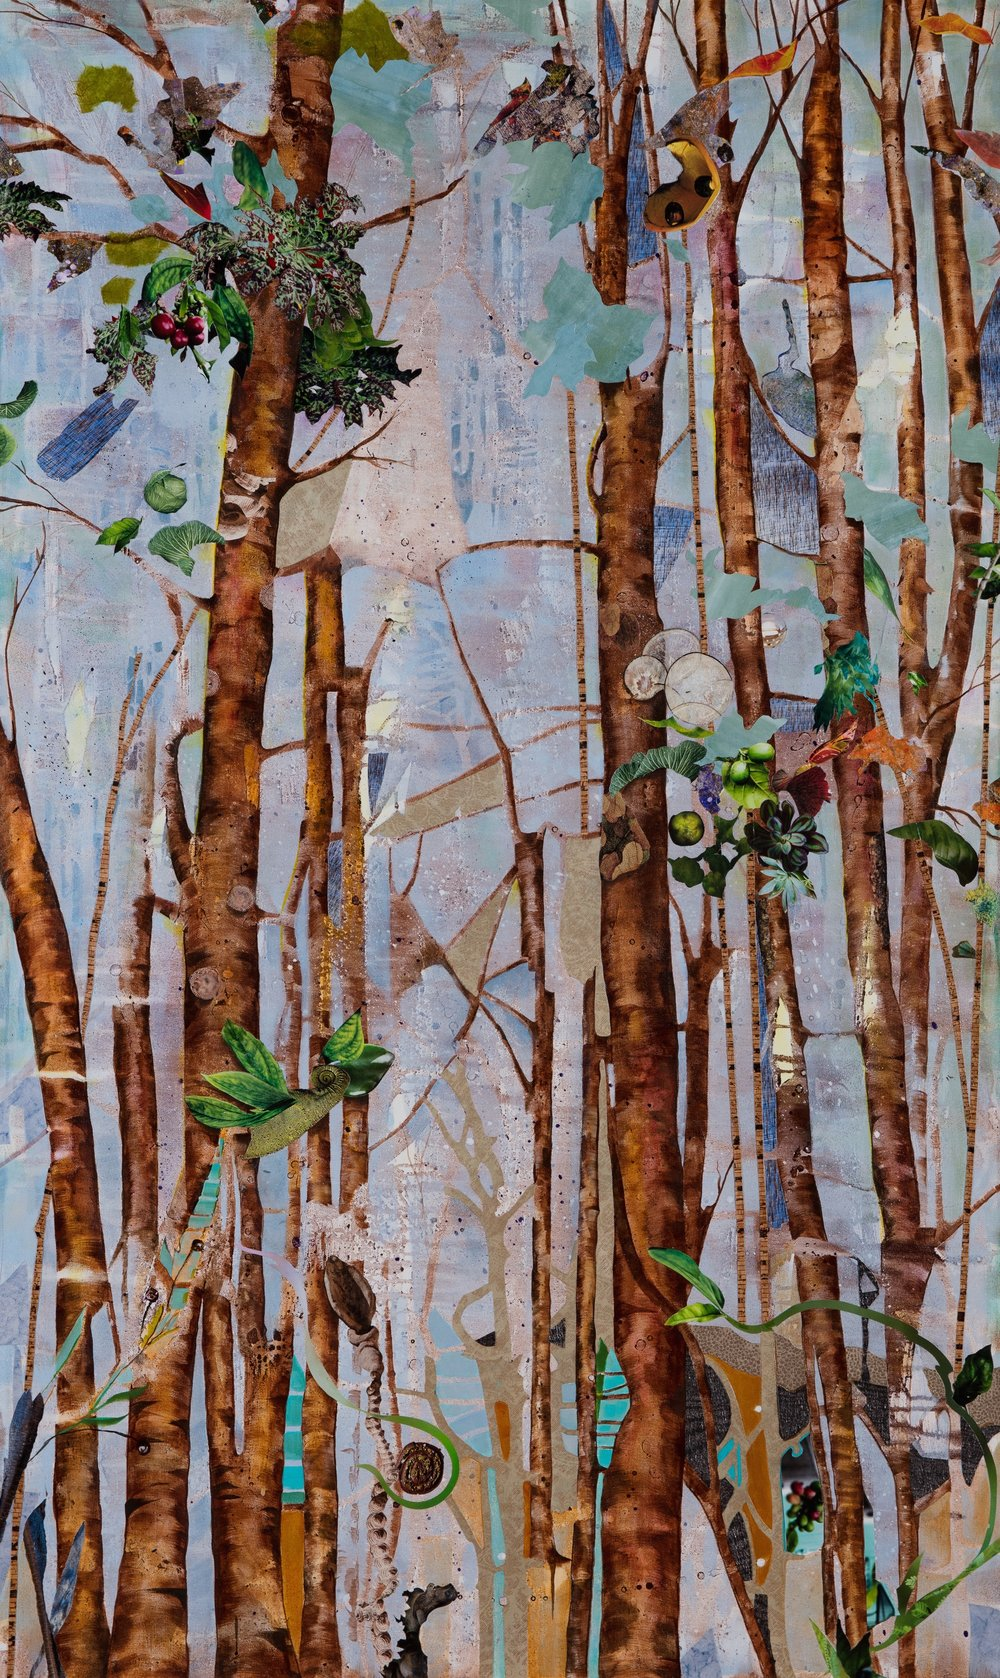 TRUNK SHOW II, 24x48, mixed collage on canvas (2017)